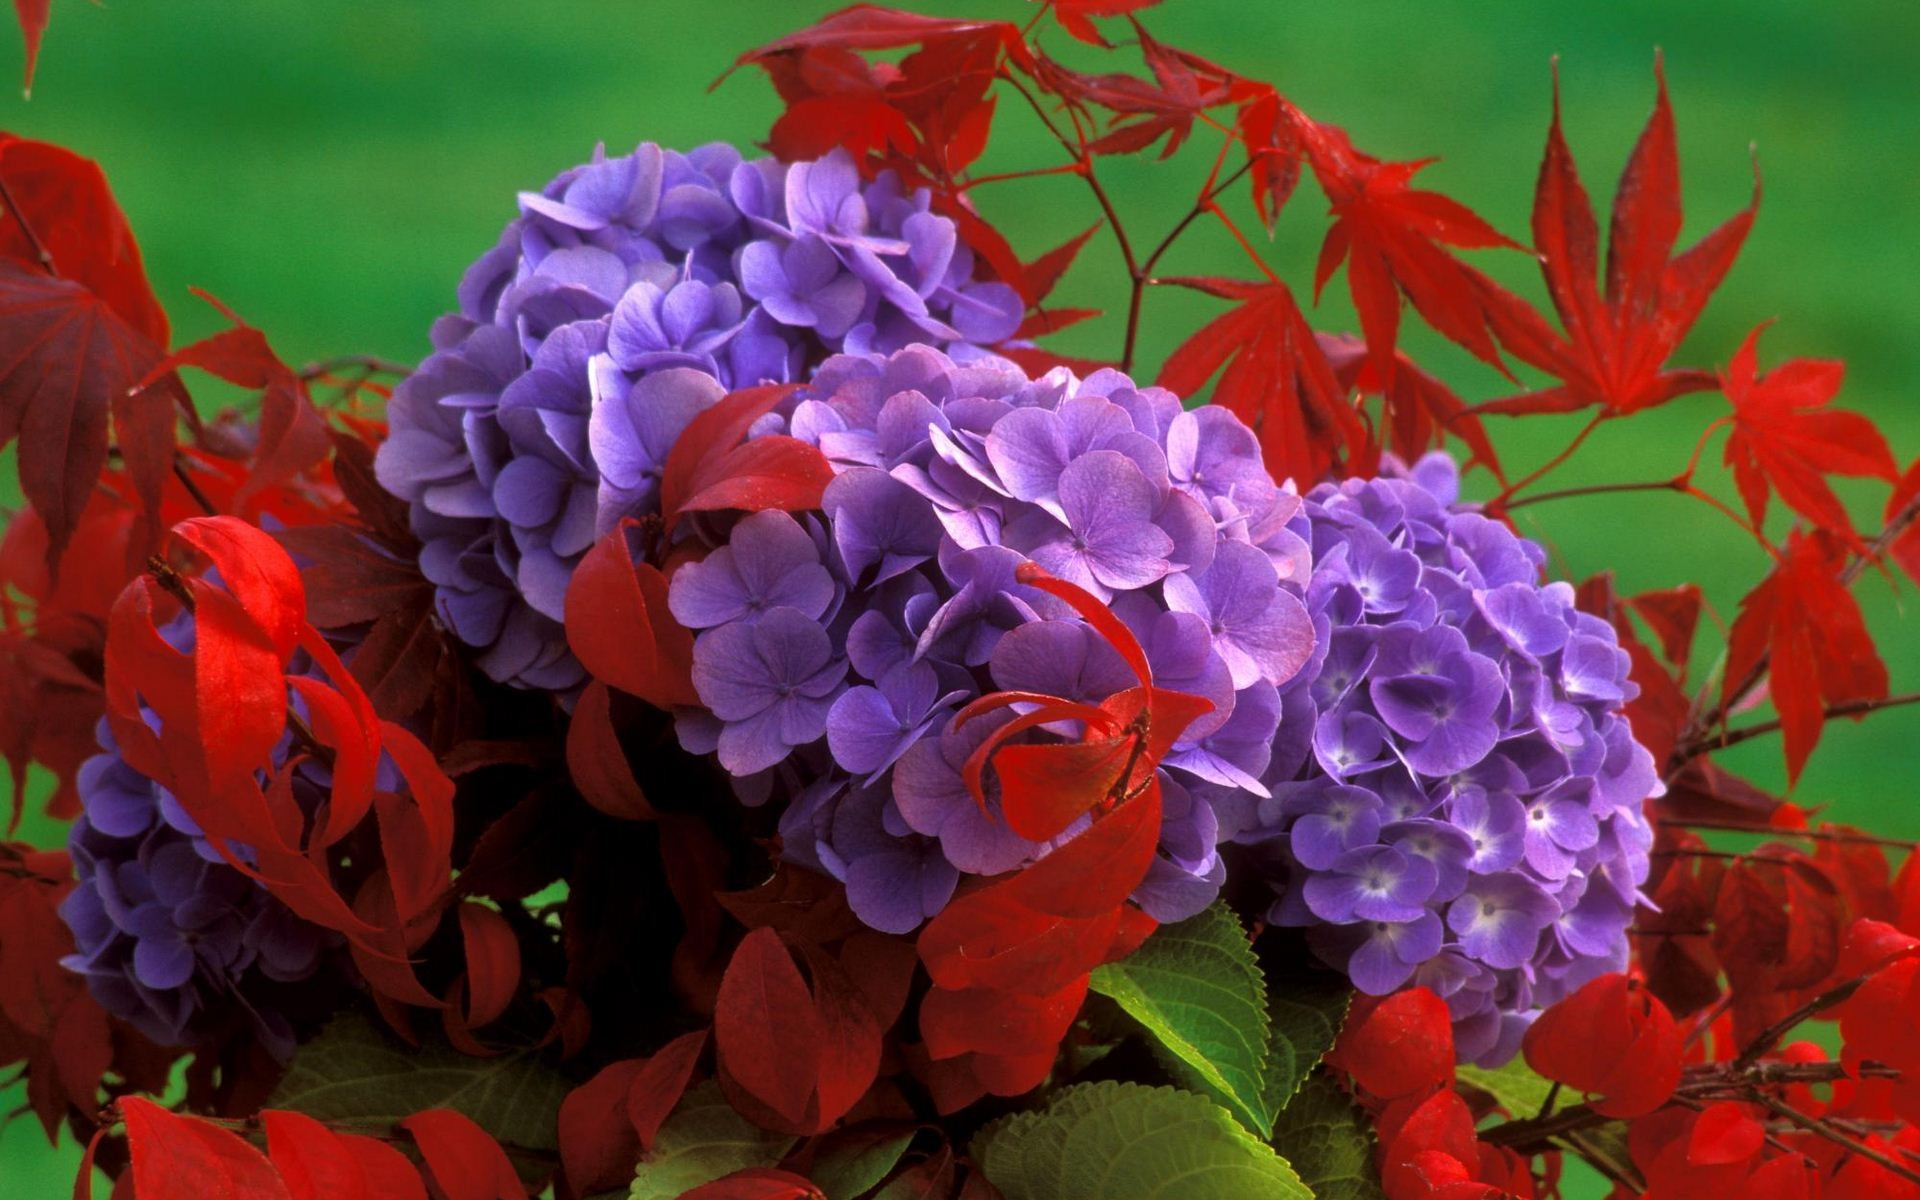 hydrangea-and-fall-leaves